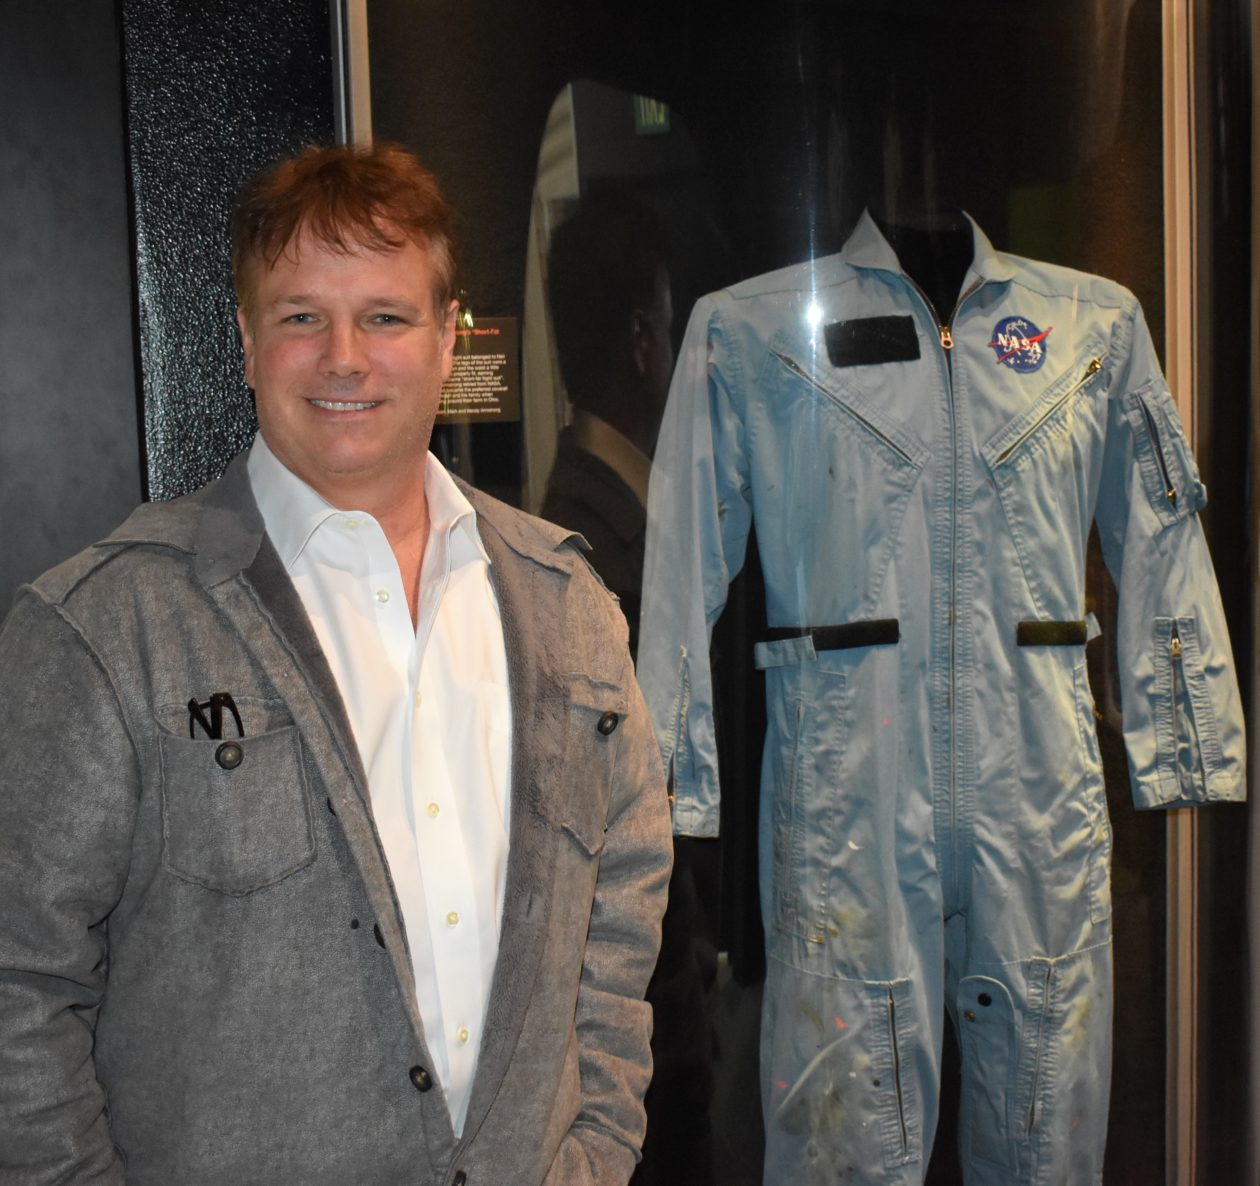 Mark Armstrong with flight suit